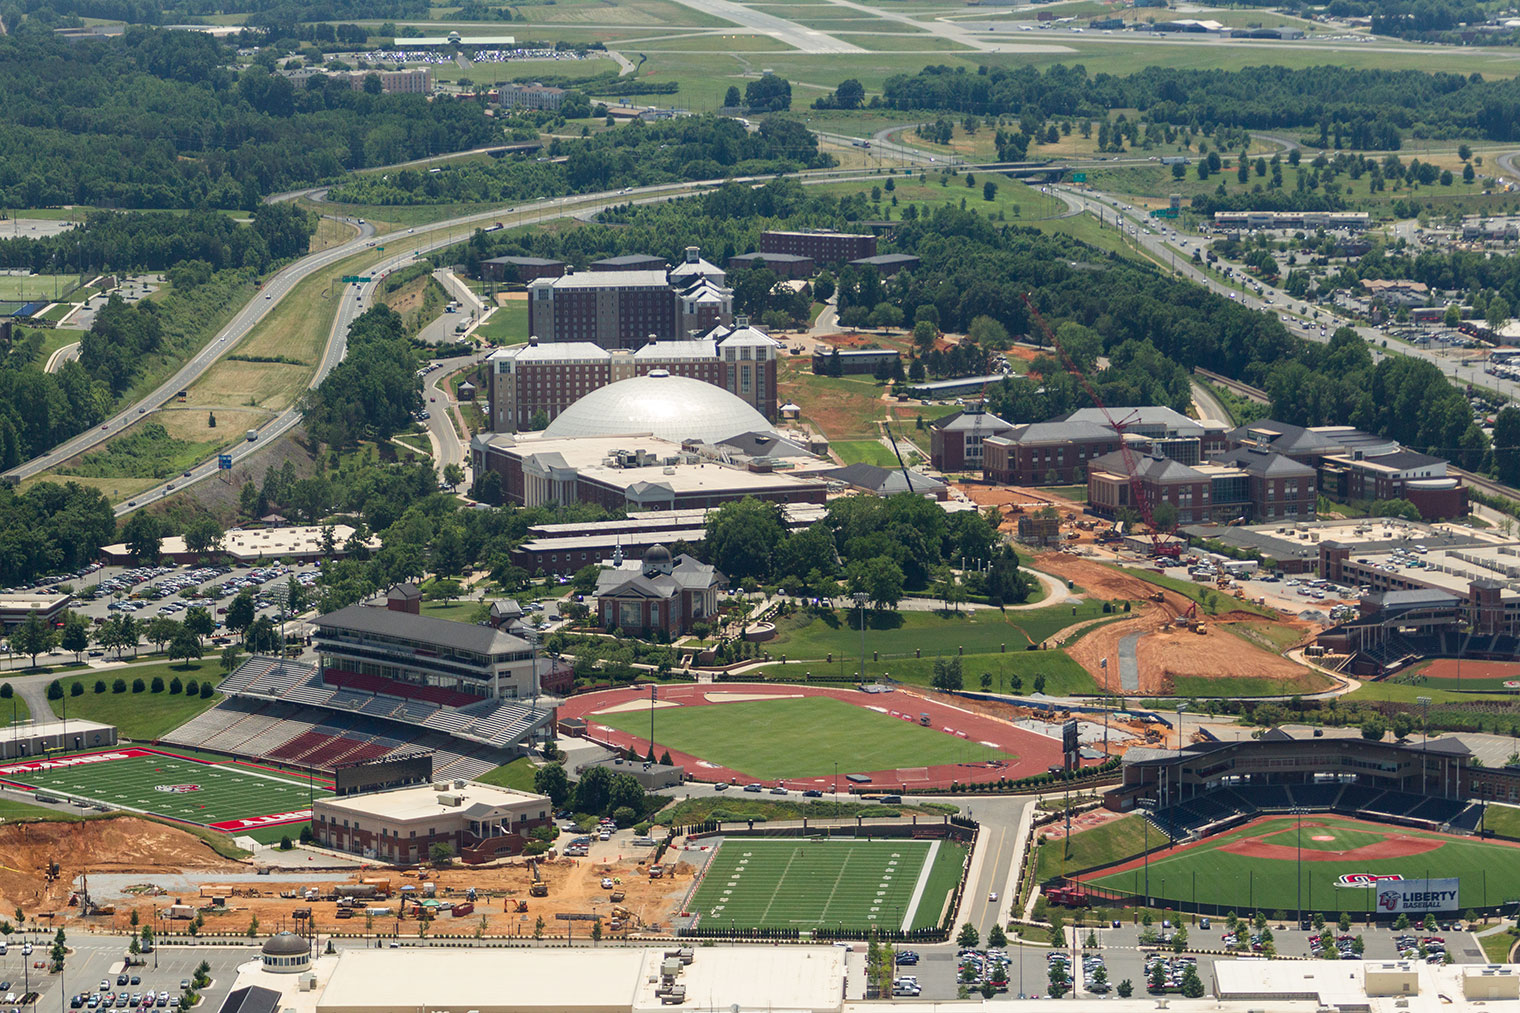 An aerial view of Liberty University's campus, taken June 16, 2016. (Photo by Kaitlyn Becker Johnson)